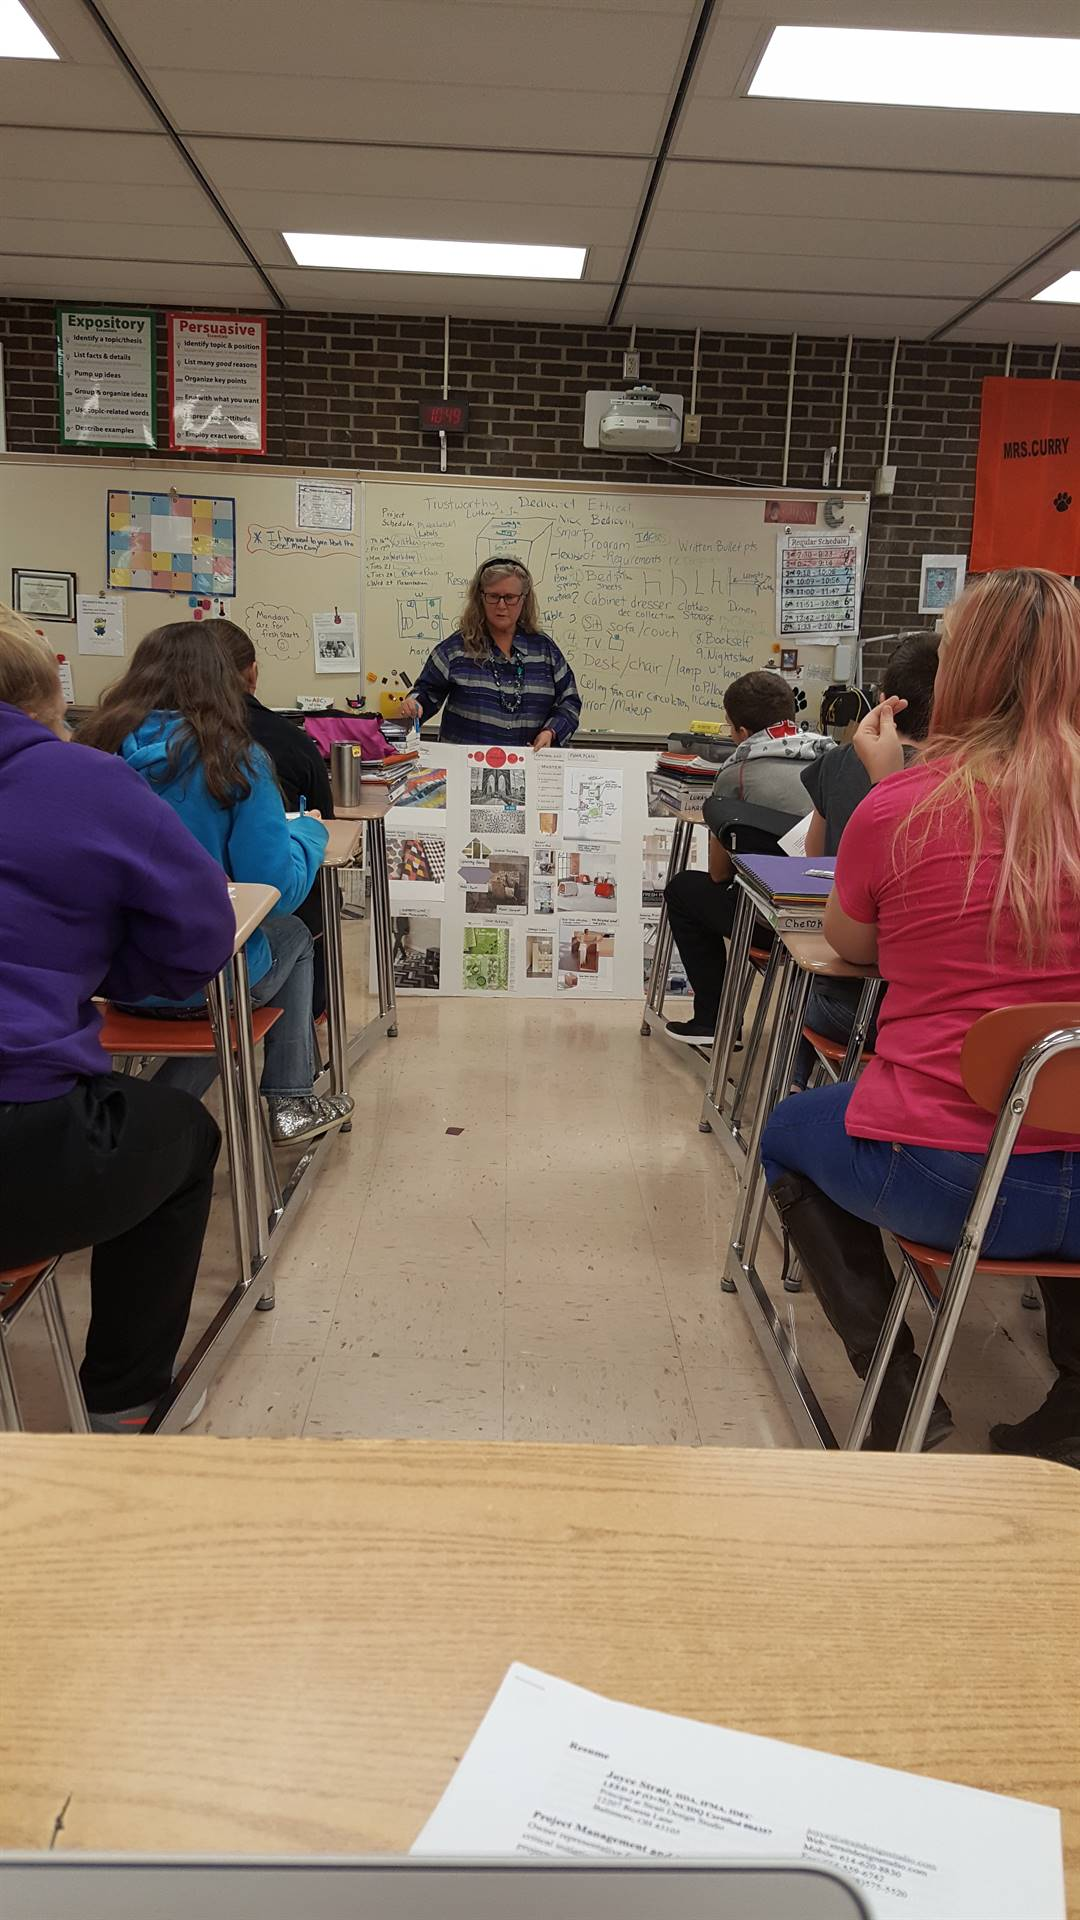 Joyce Strait, Interior Designer, working with the Intro to FCS class.